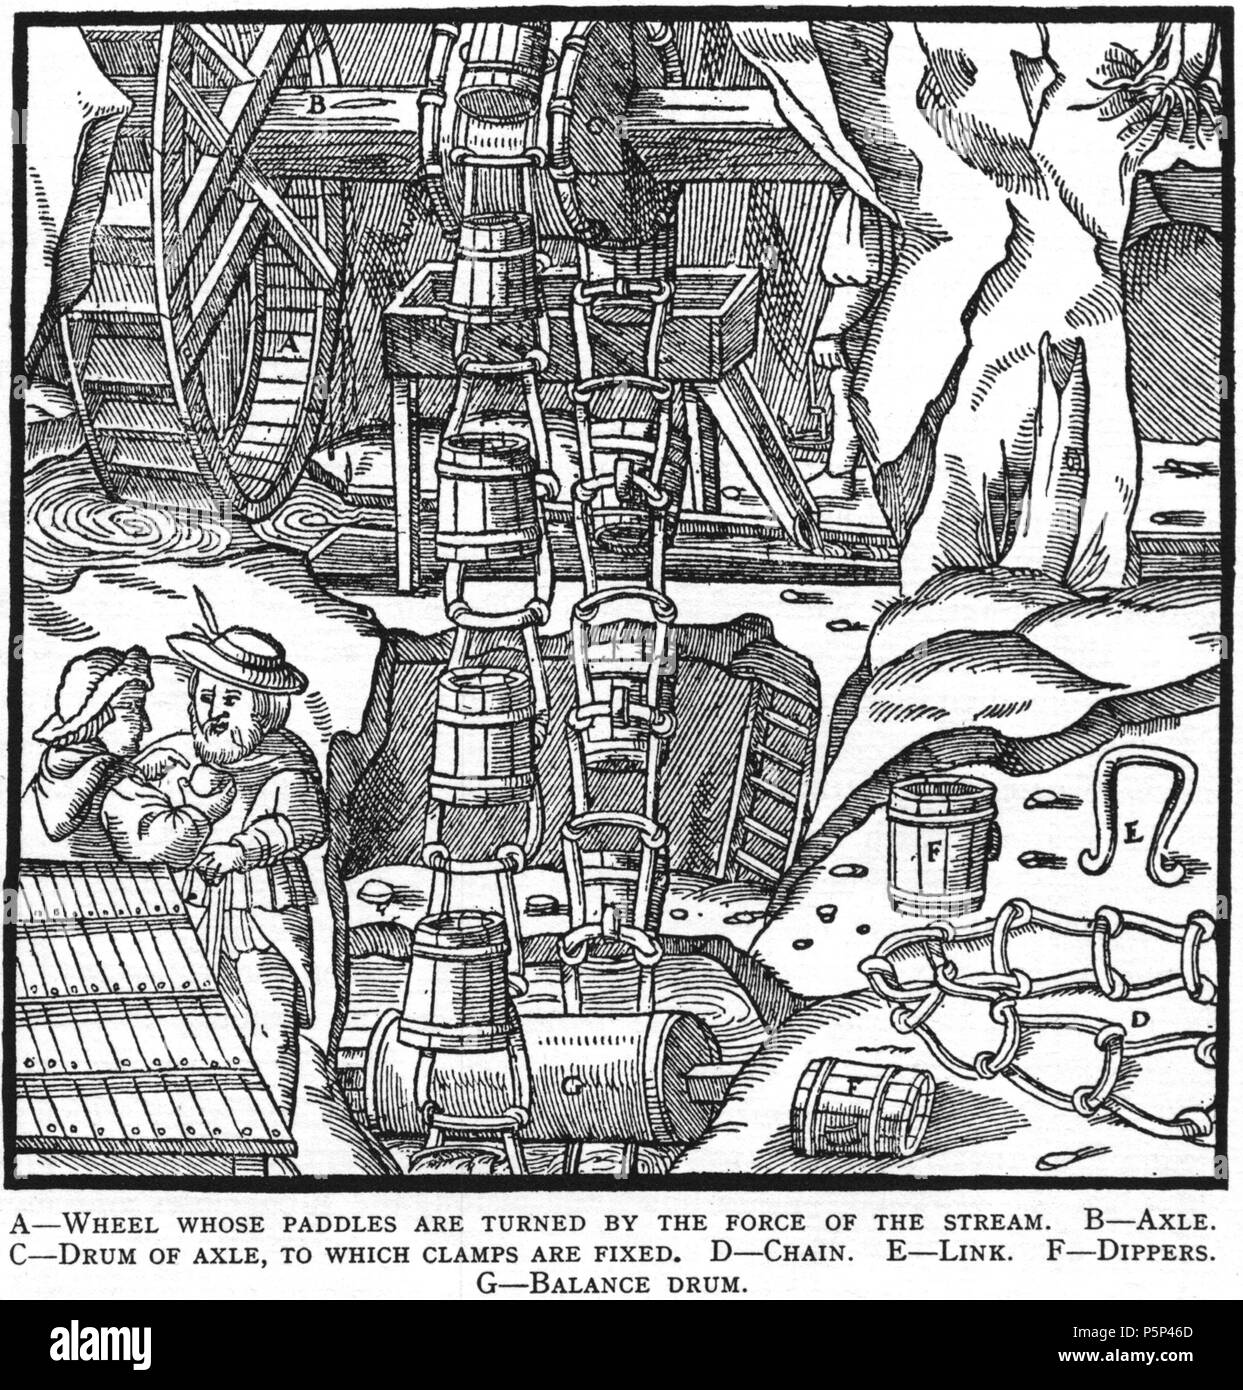 N/A. Woodcut illustration from De re metallica by Georgius Agricola. This is a 300dpi scan from the 1950 Dover edition of the 1913 Hoover translation of the 1556 reference. The Dover edition has slightly smaller size prints than the Hoover (which is a rare book). The woodcuts were recreated for the 1913 printing. Filenames (except for the title page) indicate the chapter (2, 3, 5, etc.) followed by the sequential number of the illustration. 2 May 2005, 07:06:20. TCO (talk) 223 Book6-22 - Stock Image